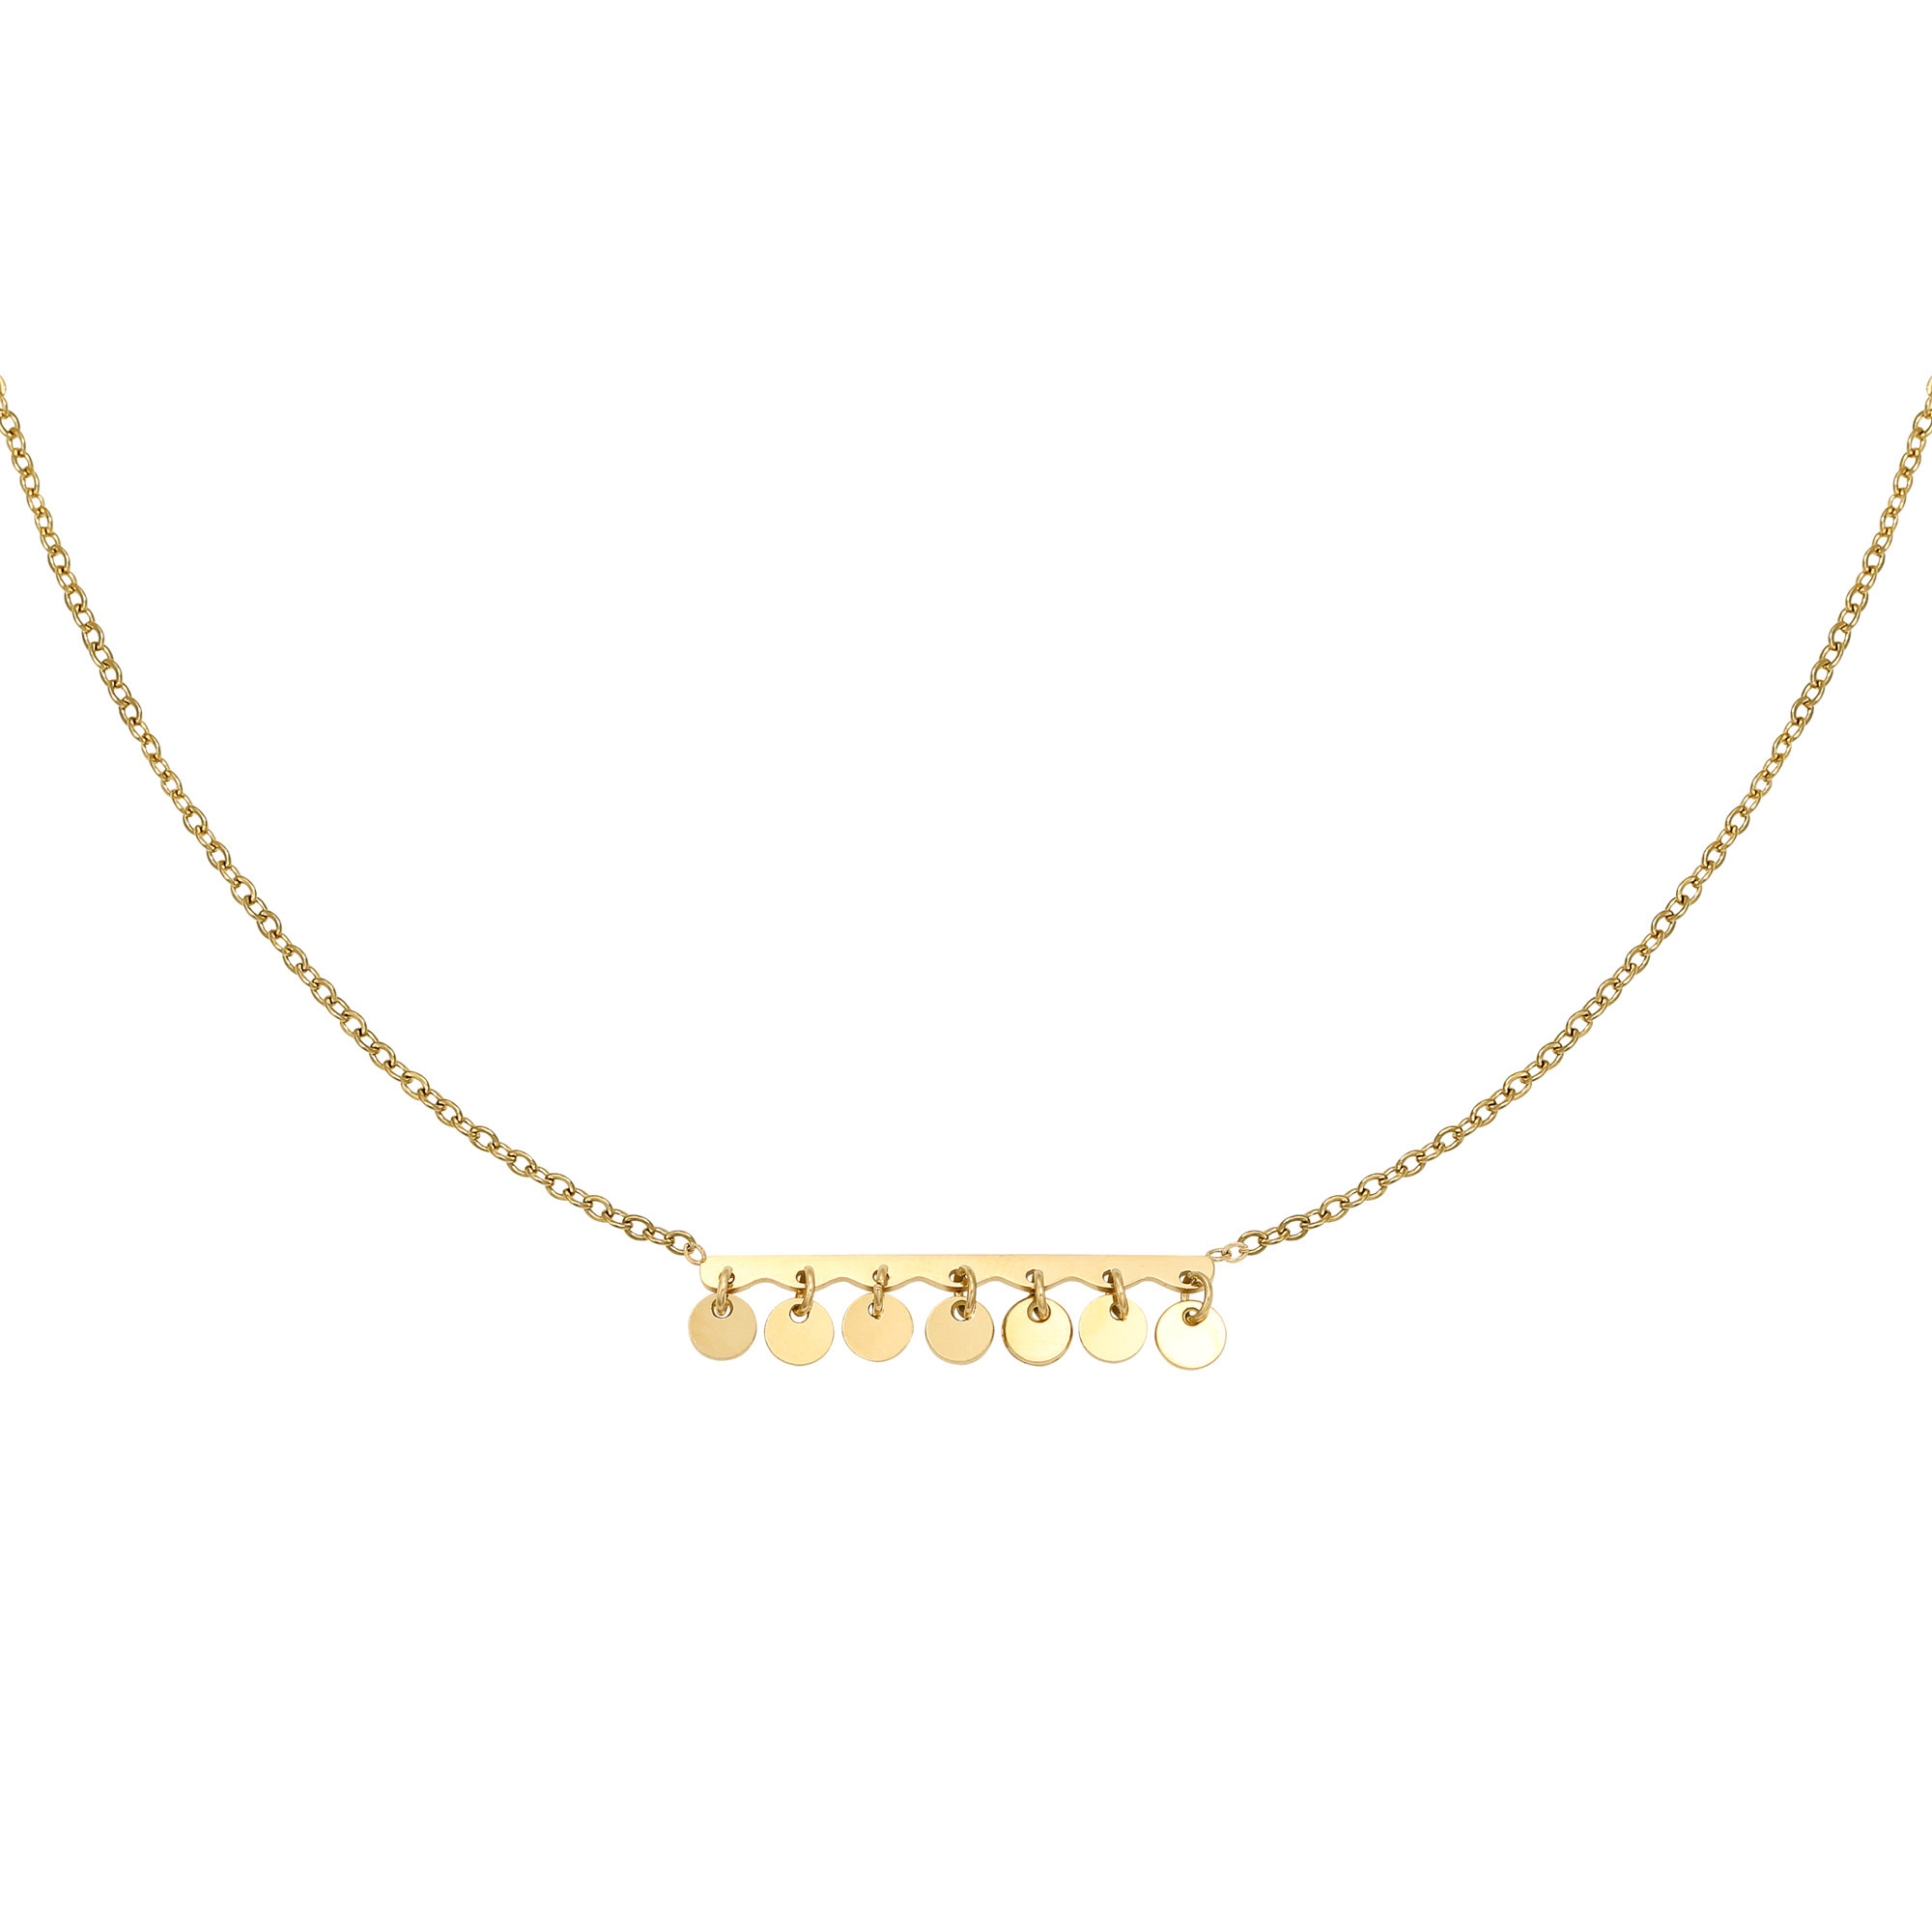 With love Necklace confetti gold